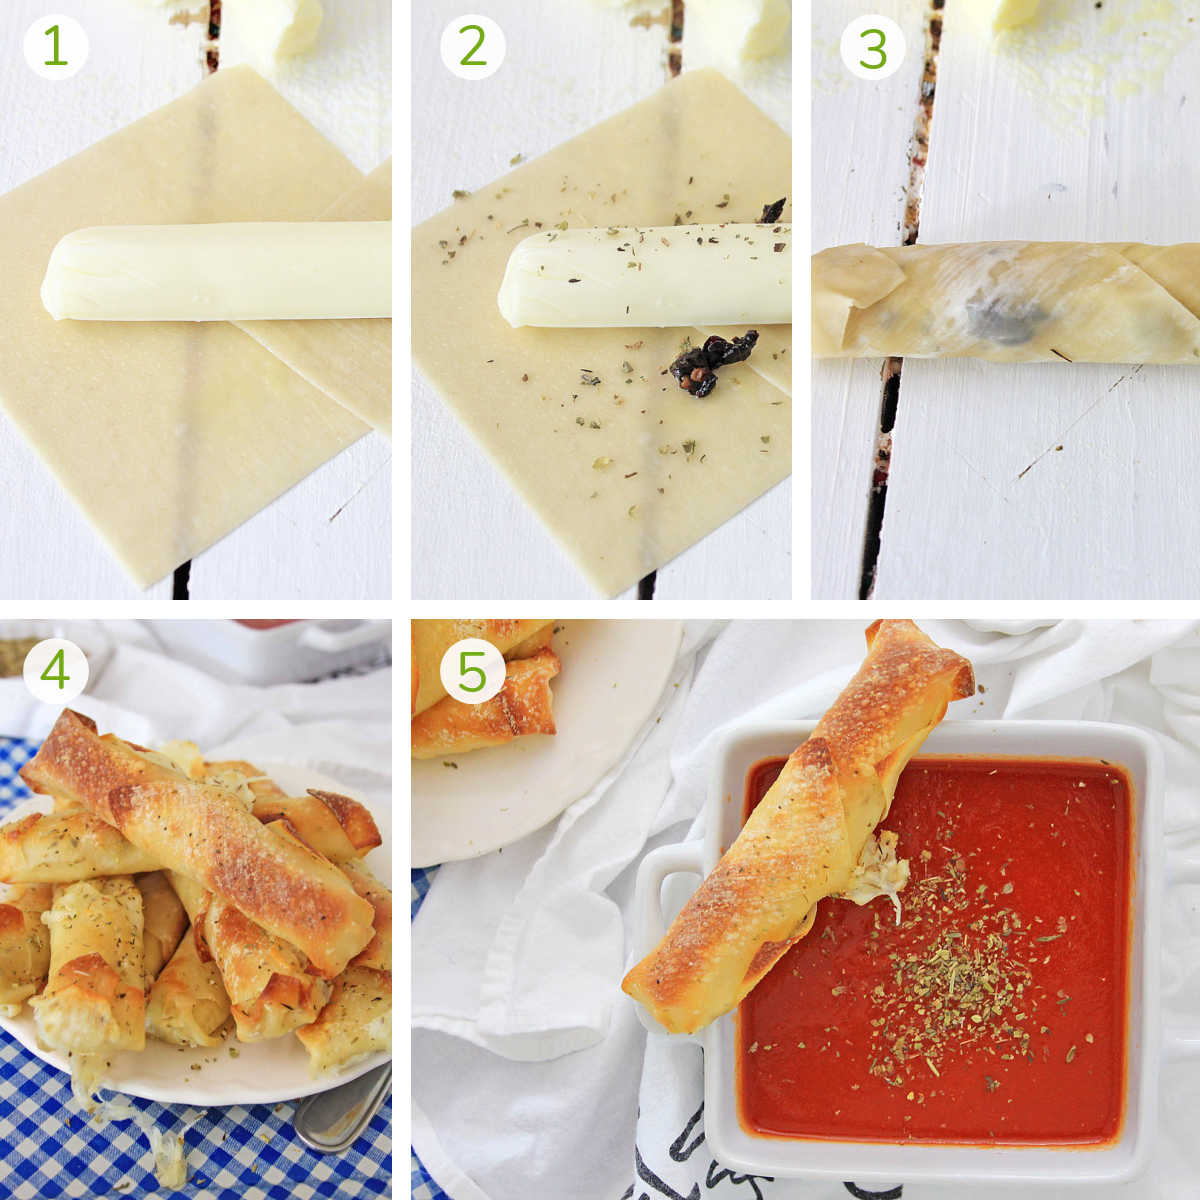 process photos showing how to roll the cheese stick, air frying it, and adding the marinara sauce.